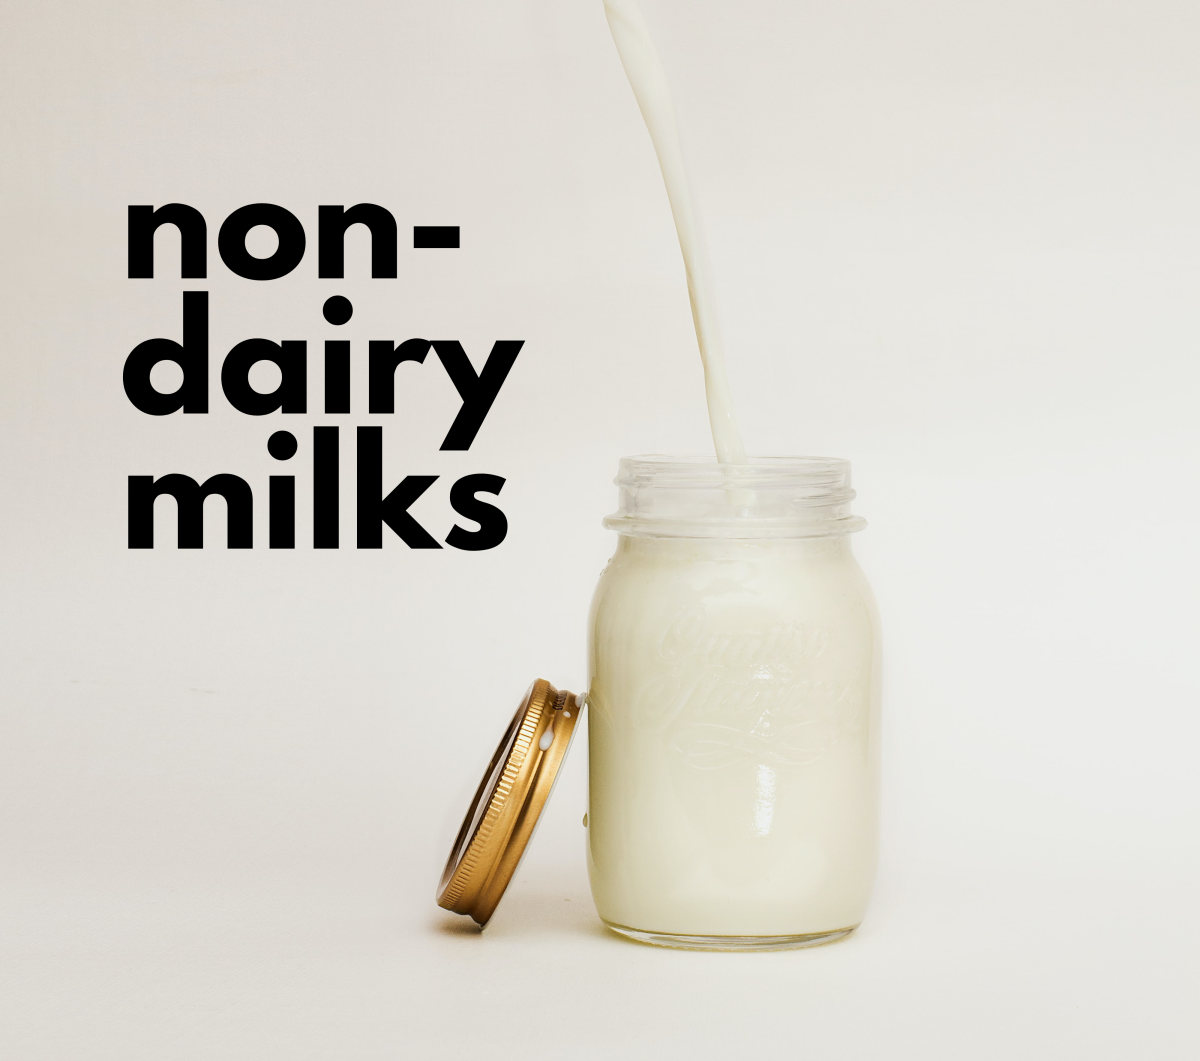 Let's take a look at 10 different types of non-dairy milks.